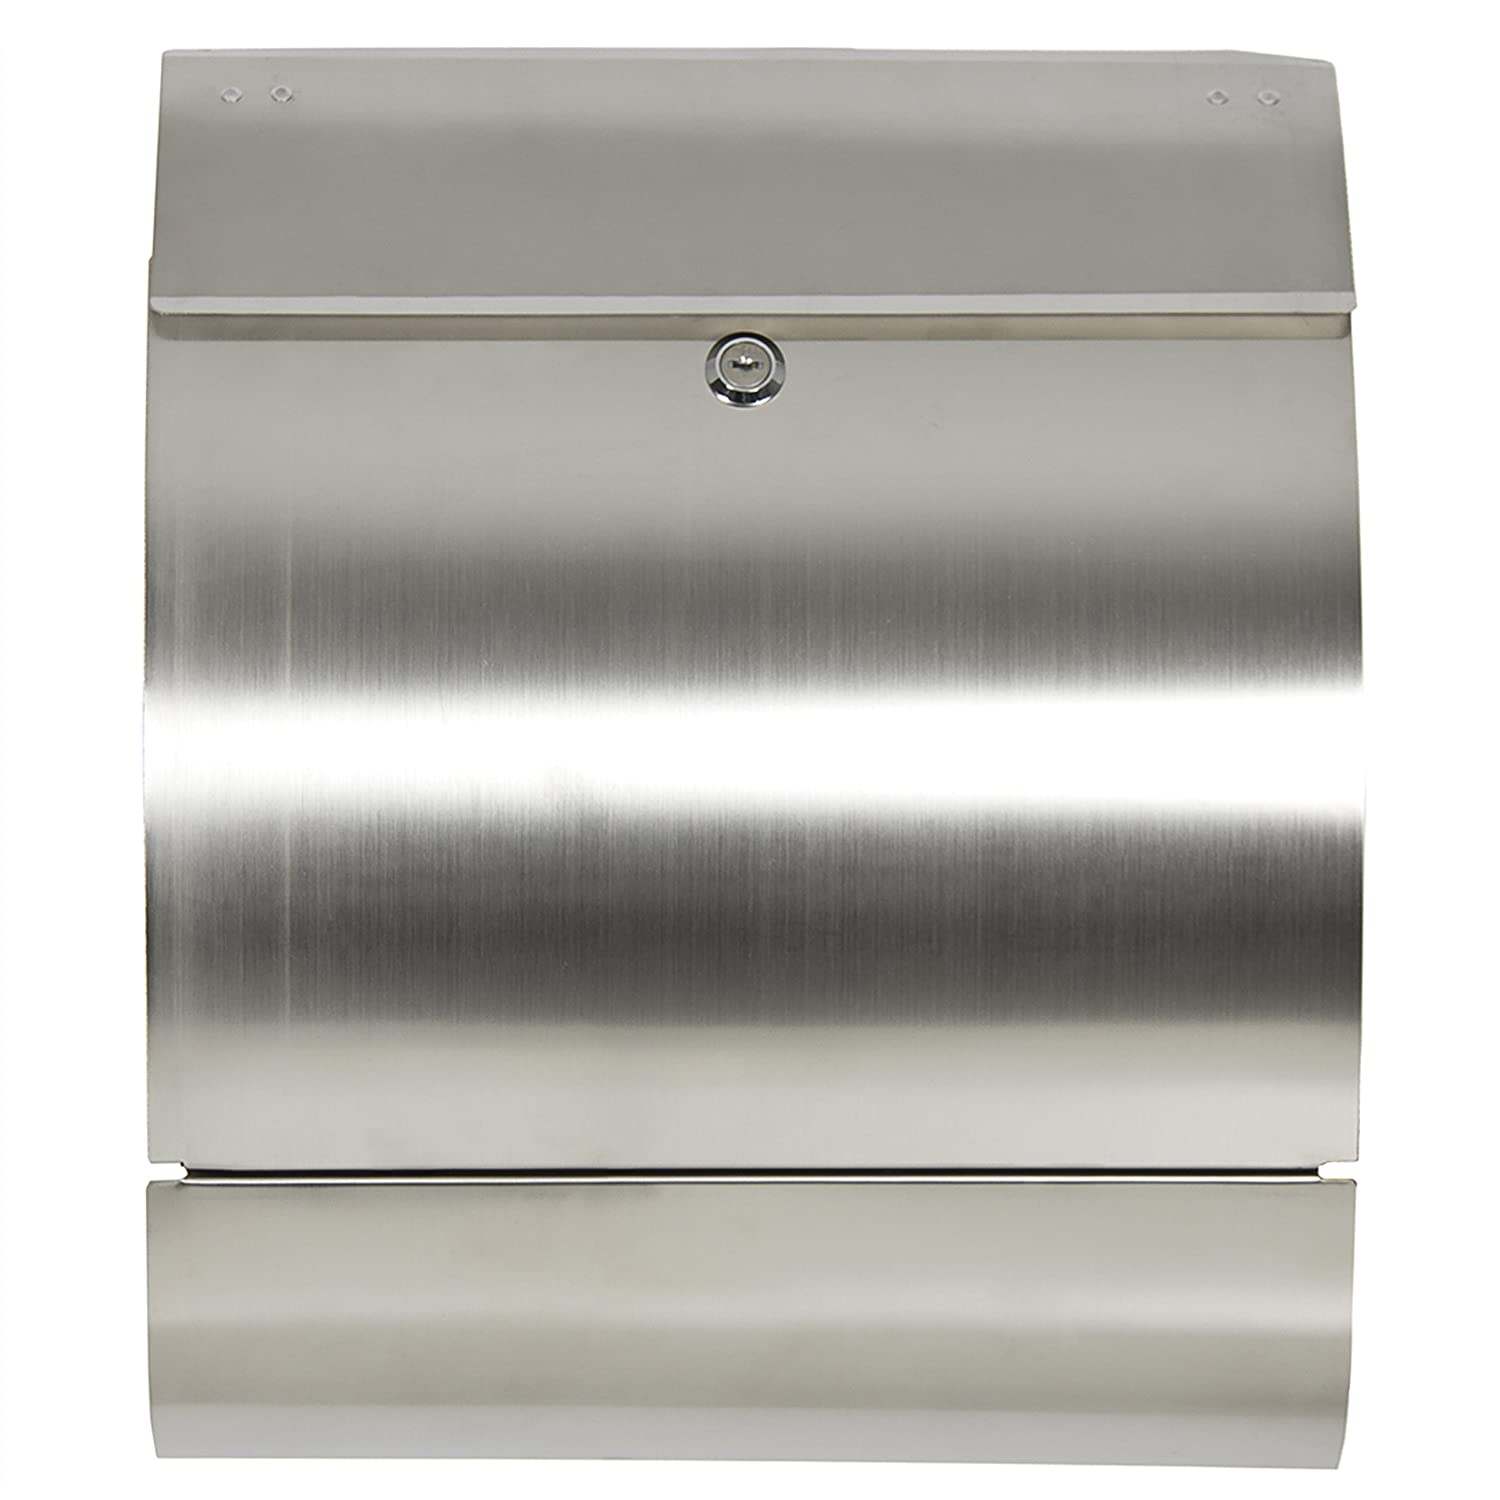 Famous Best Choice Products SKY166 Stainless Steel Mailbox - Security  SP12